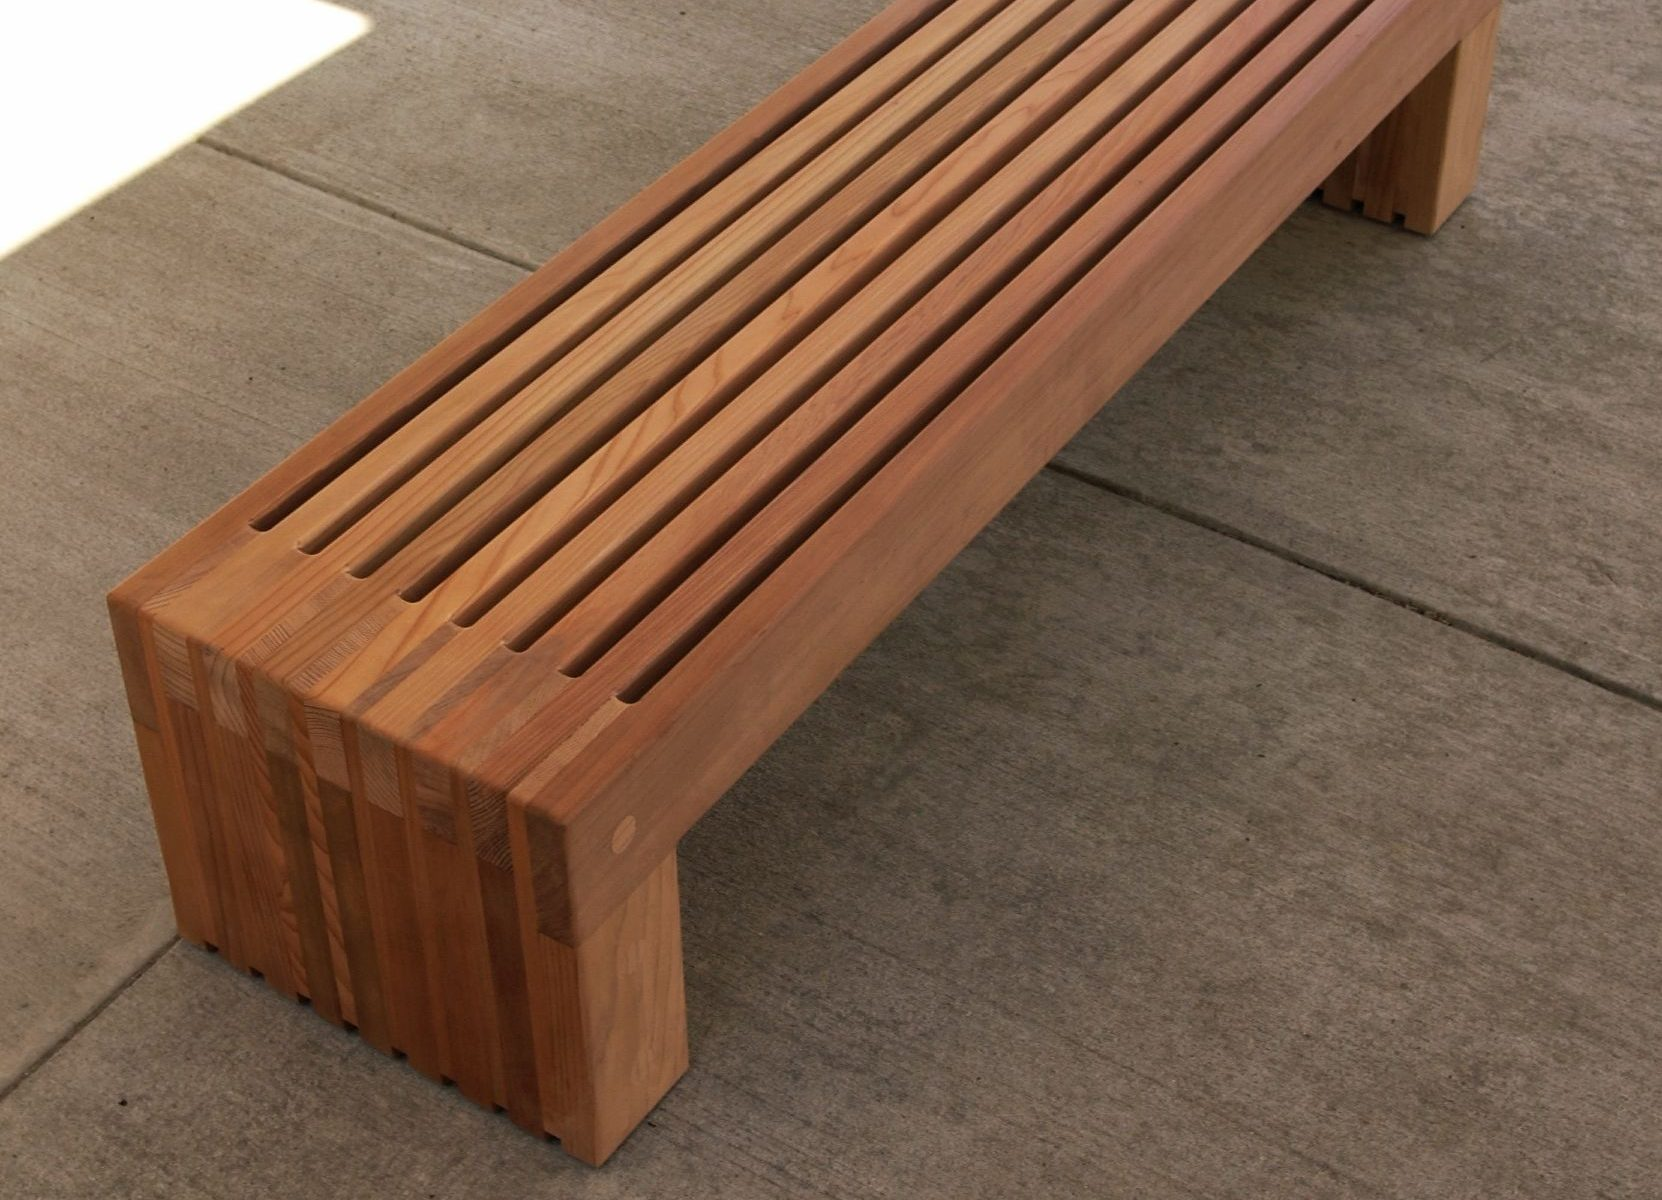 wooden benches summer is coming so you need a bench like this pinterest benchwooden benches